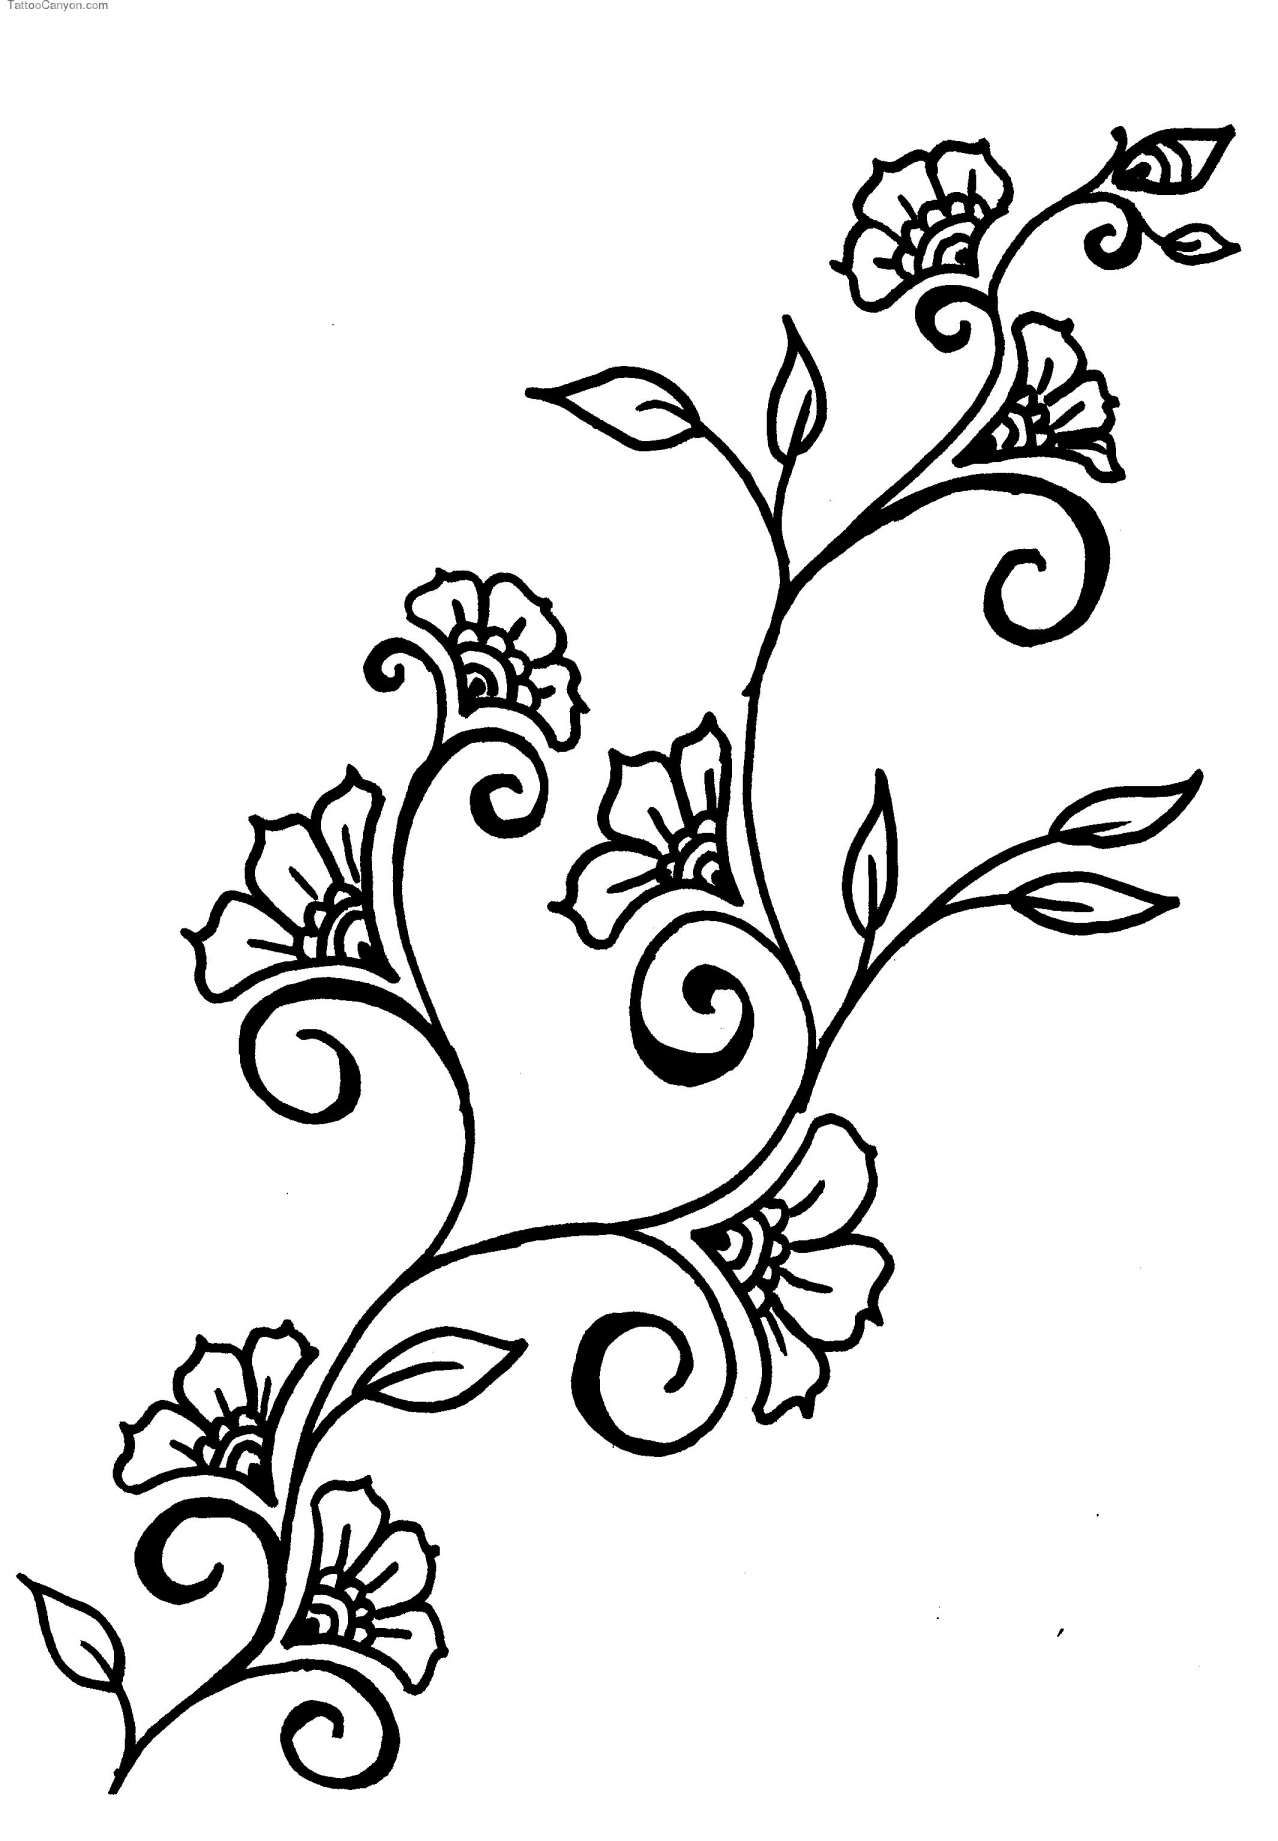 12 Drawings Of Vines And Flowers Flower drawing design